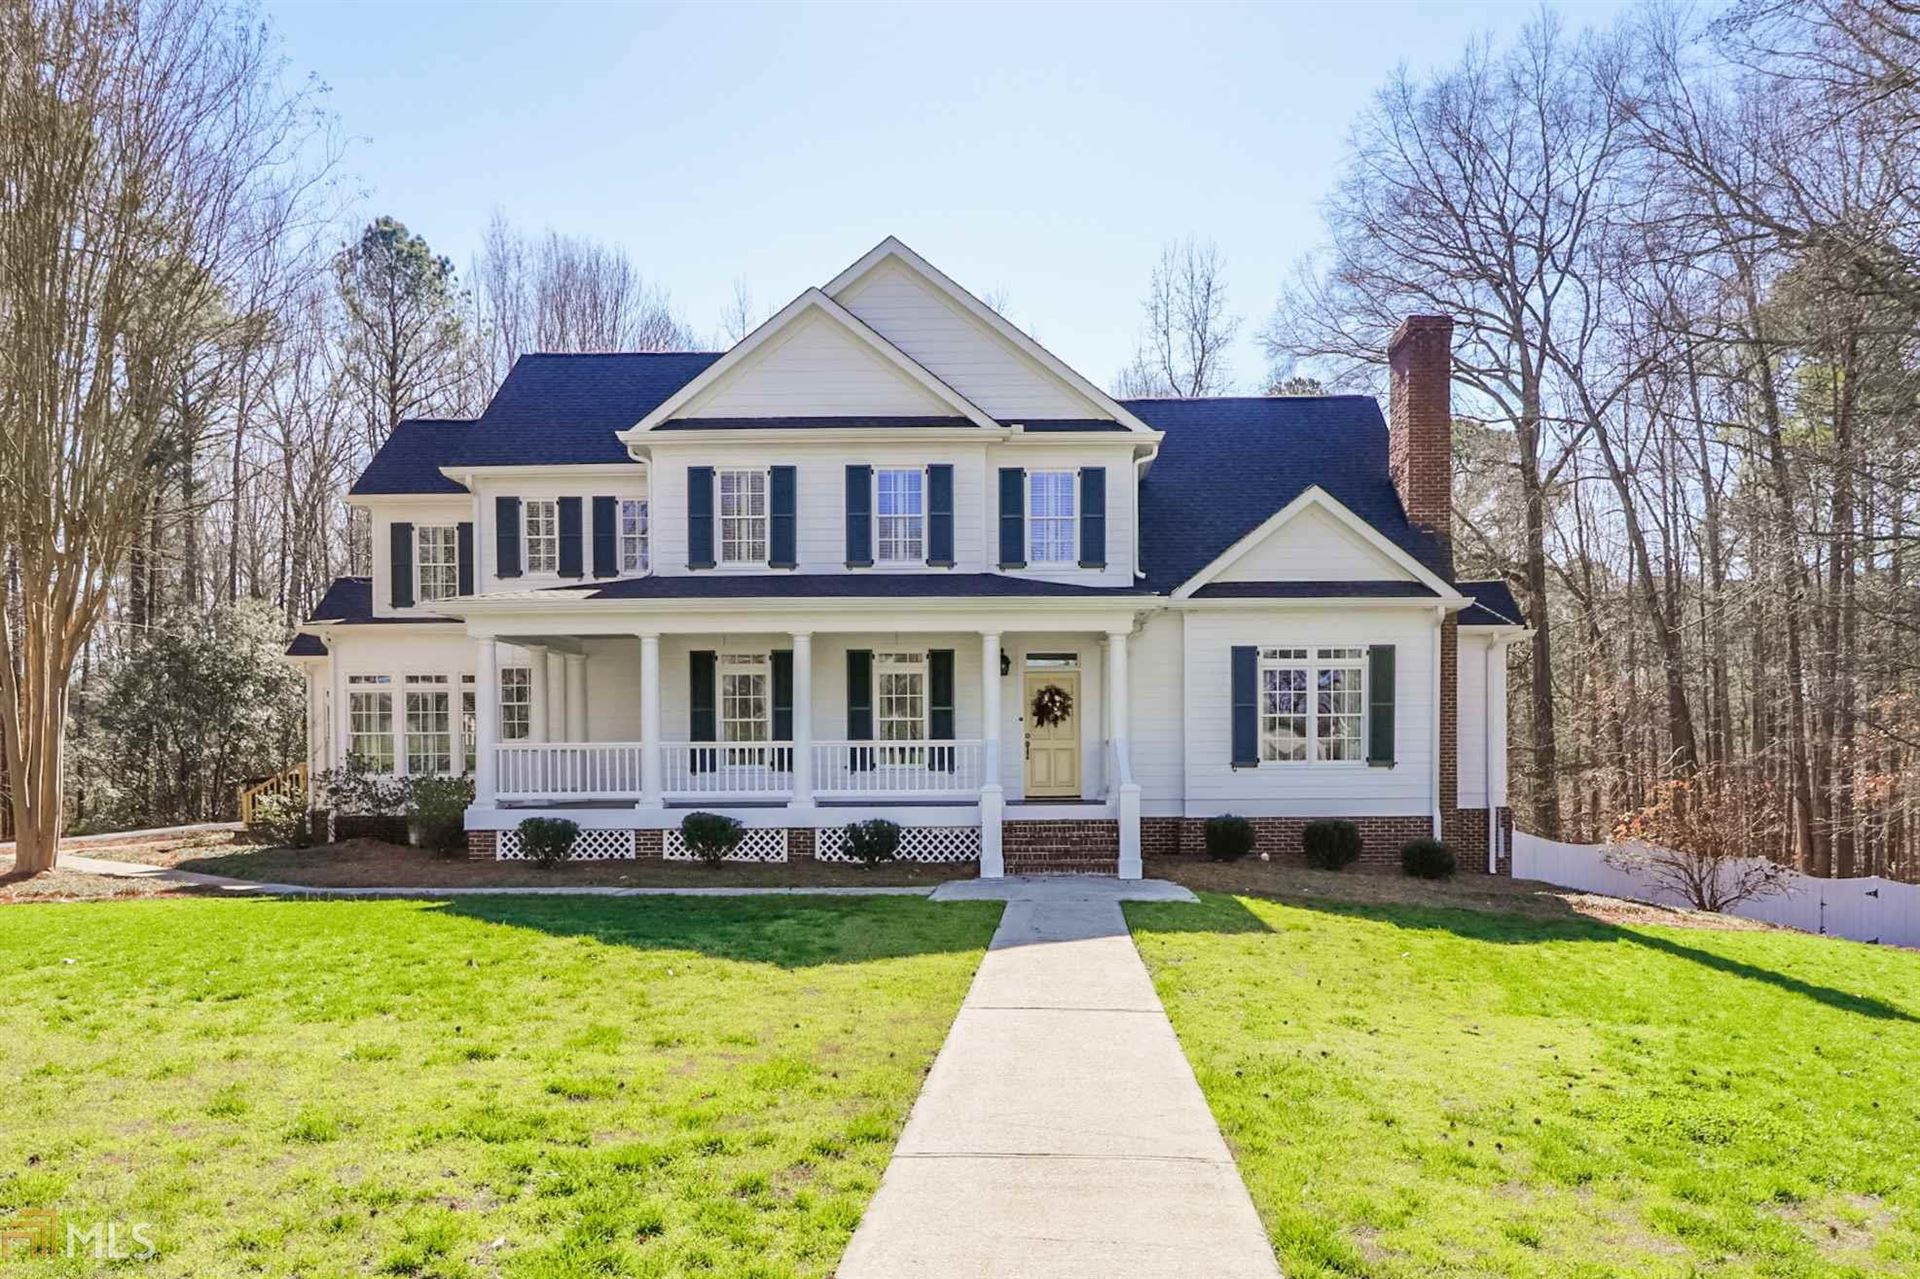 20 Meadow Lake Ln, Social Circle, GA 30025 - #: 8742925